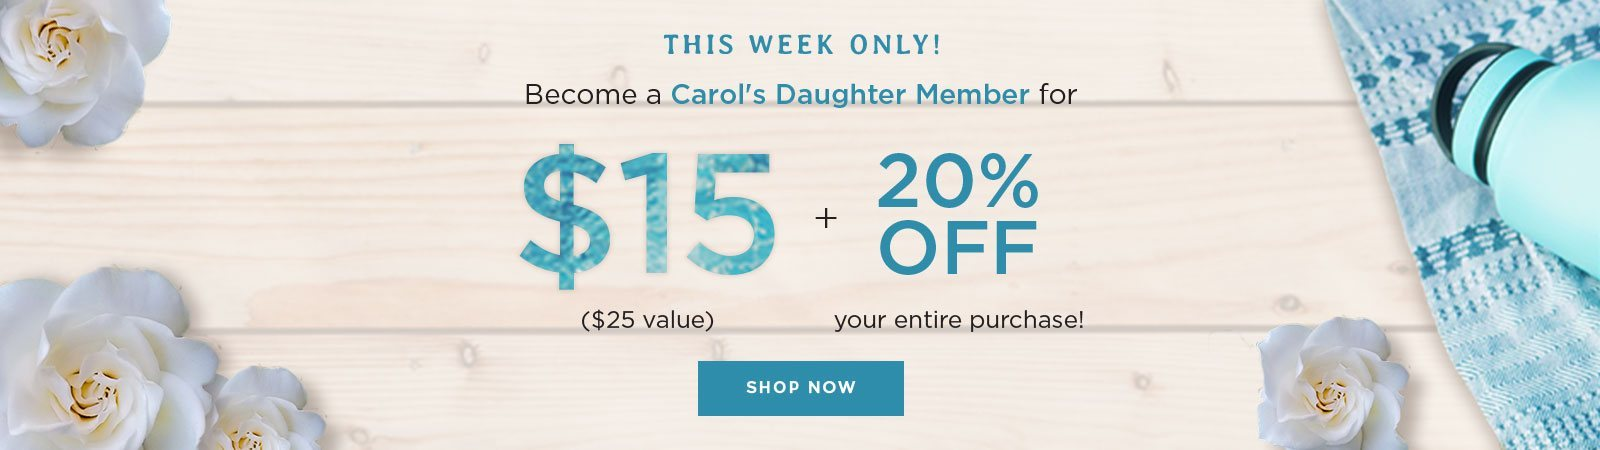 Get Carol's Daughter Membership for only $15. Join Now.